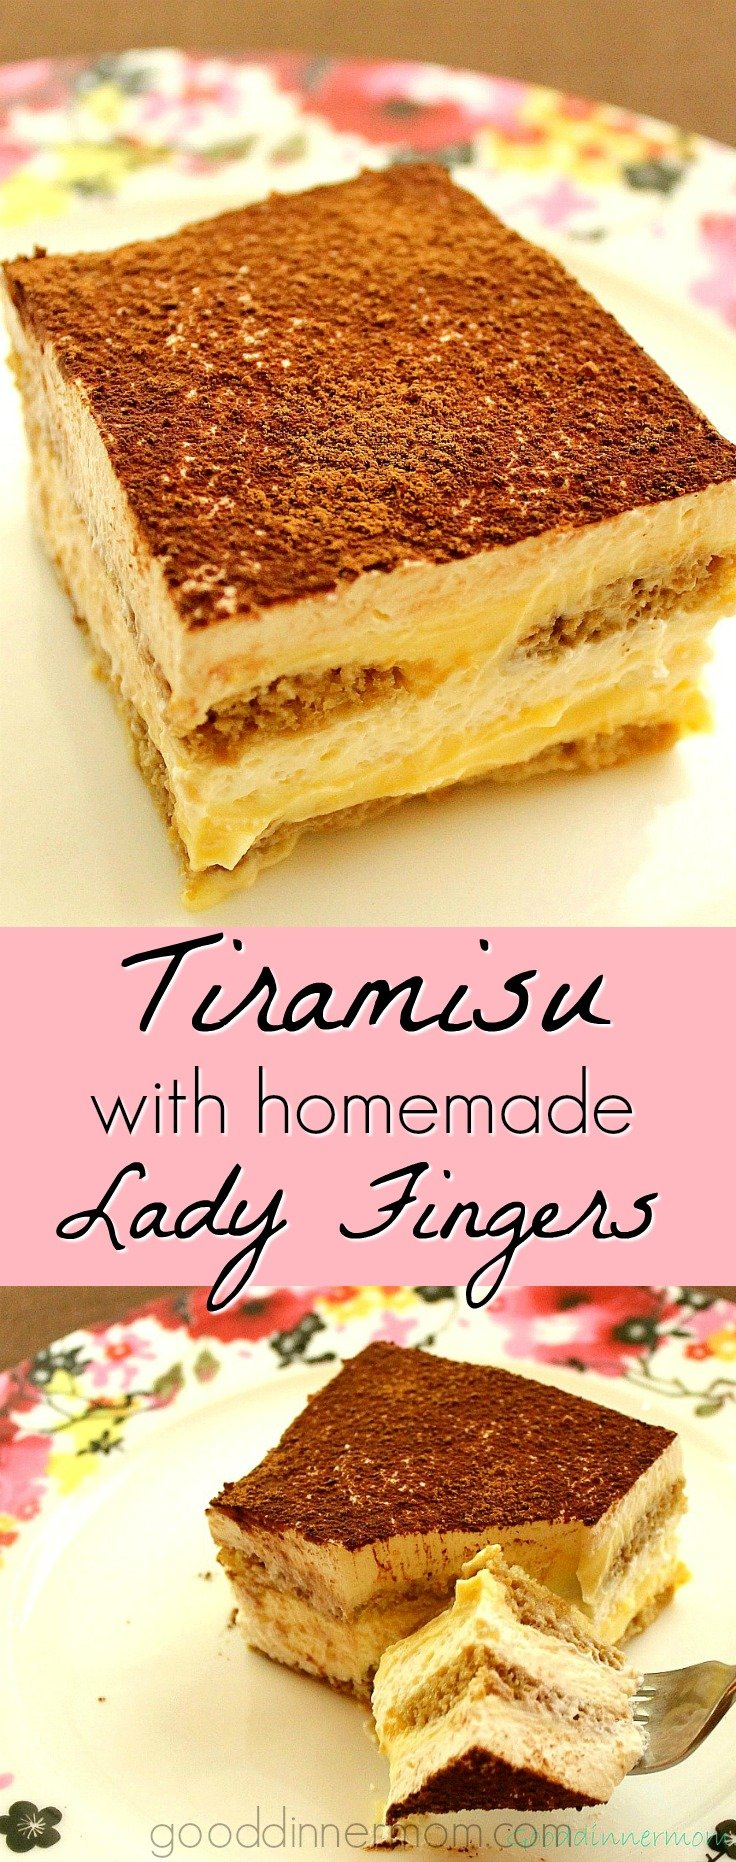 Tiramisu with homemade Ladyfingers will rival the best from any restaurant. Perfect hints of cocoa, rum and coffee, creamy and decadent. Super easy to make.